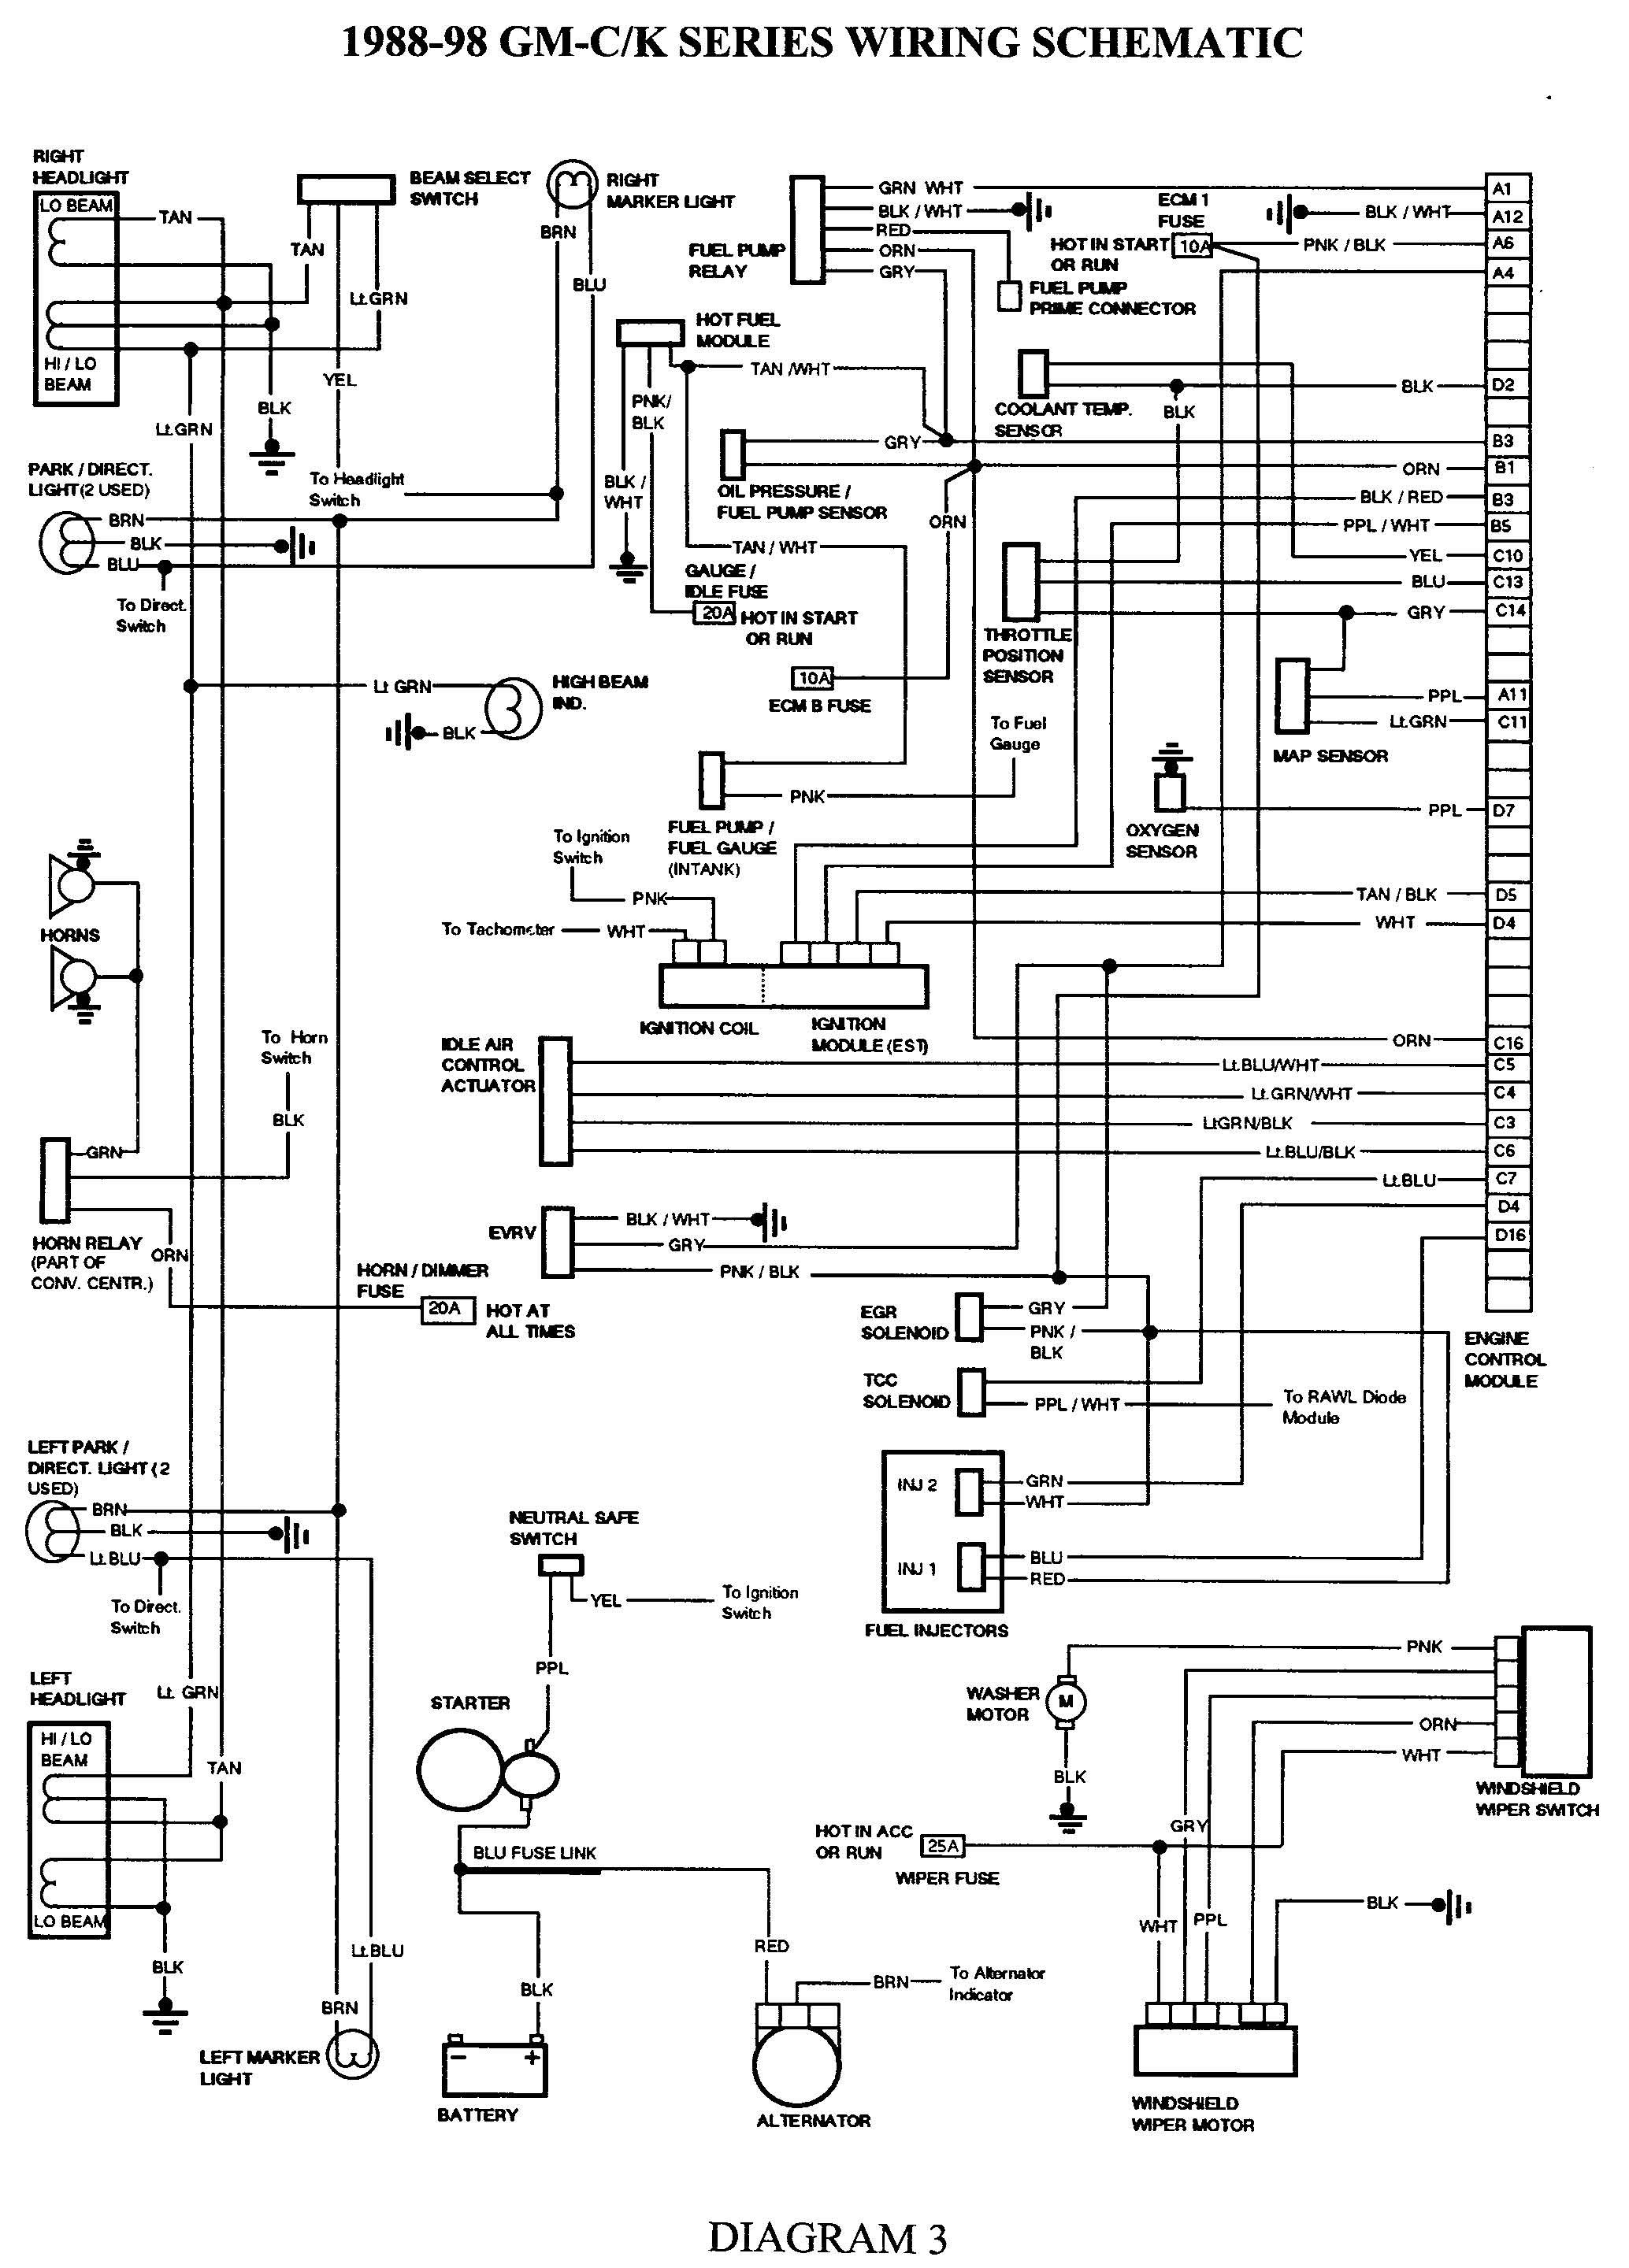 b2f2e5dbdc07dada83ef514f6d4ce3d4 gmc truck wiring diagrams on gm wiring harness diagram 88 98 kc 1990 Chevy Truck at n-0.co